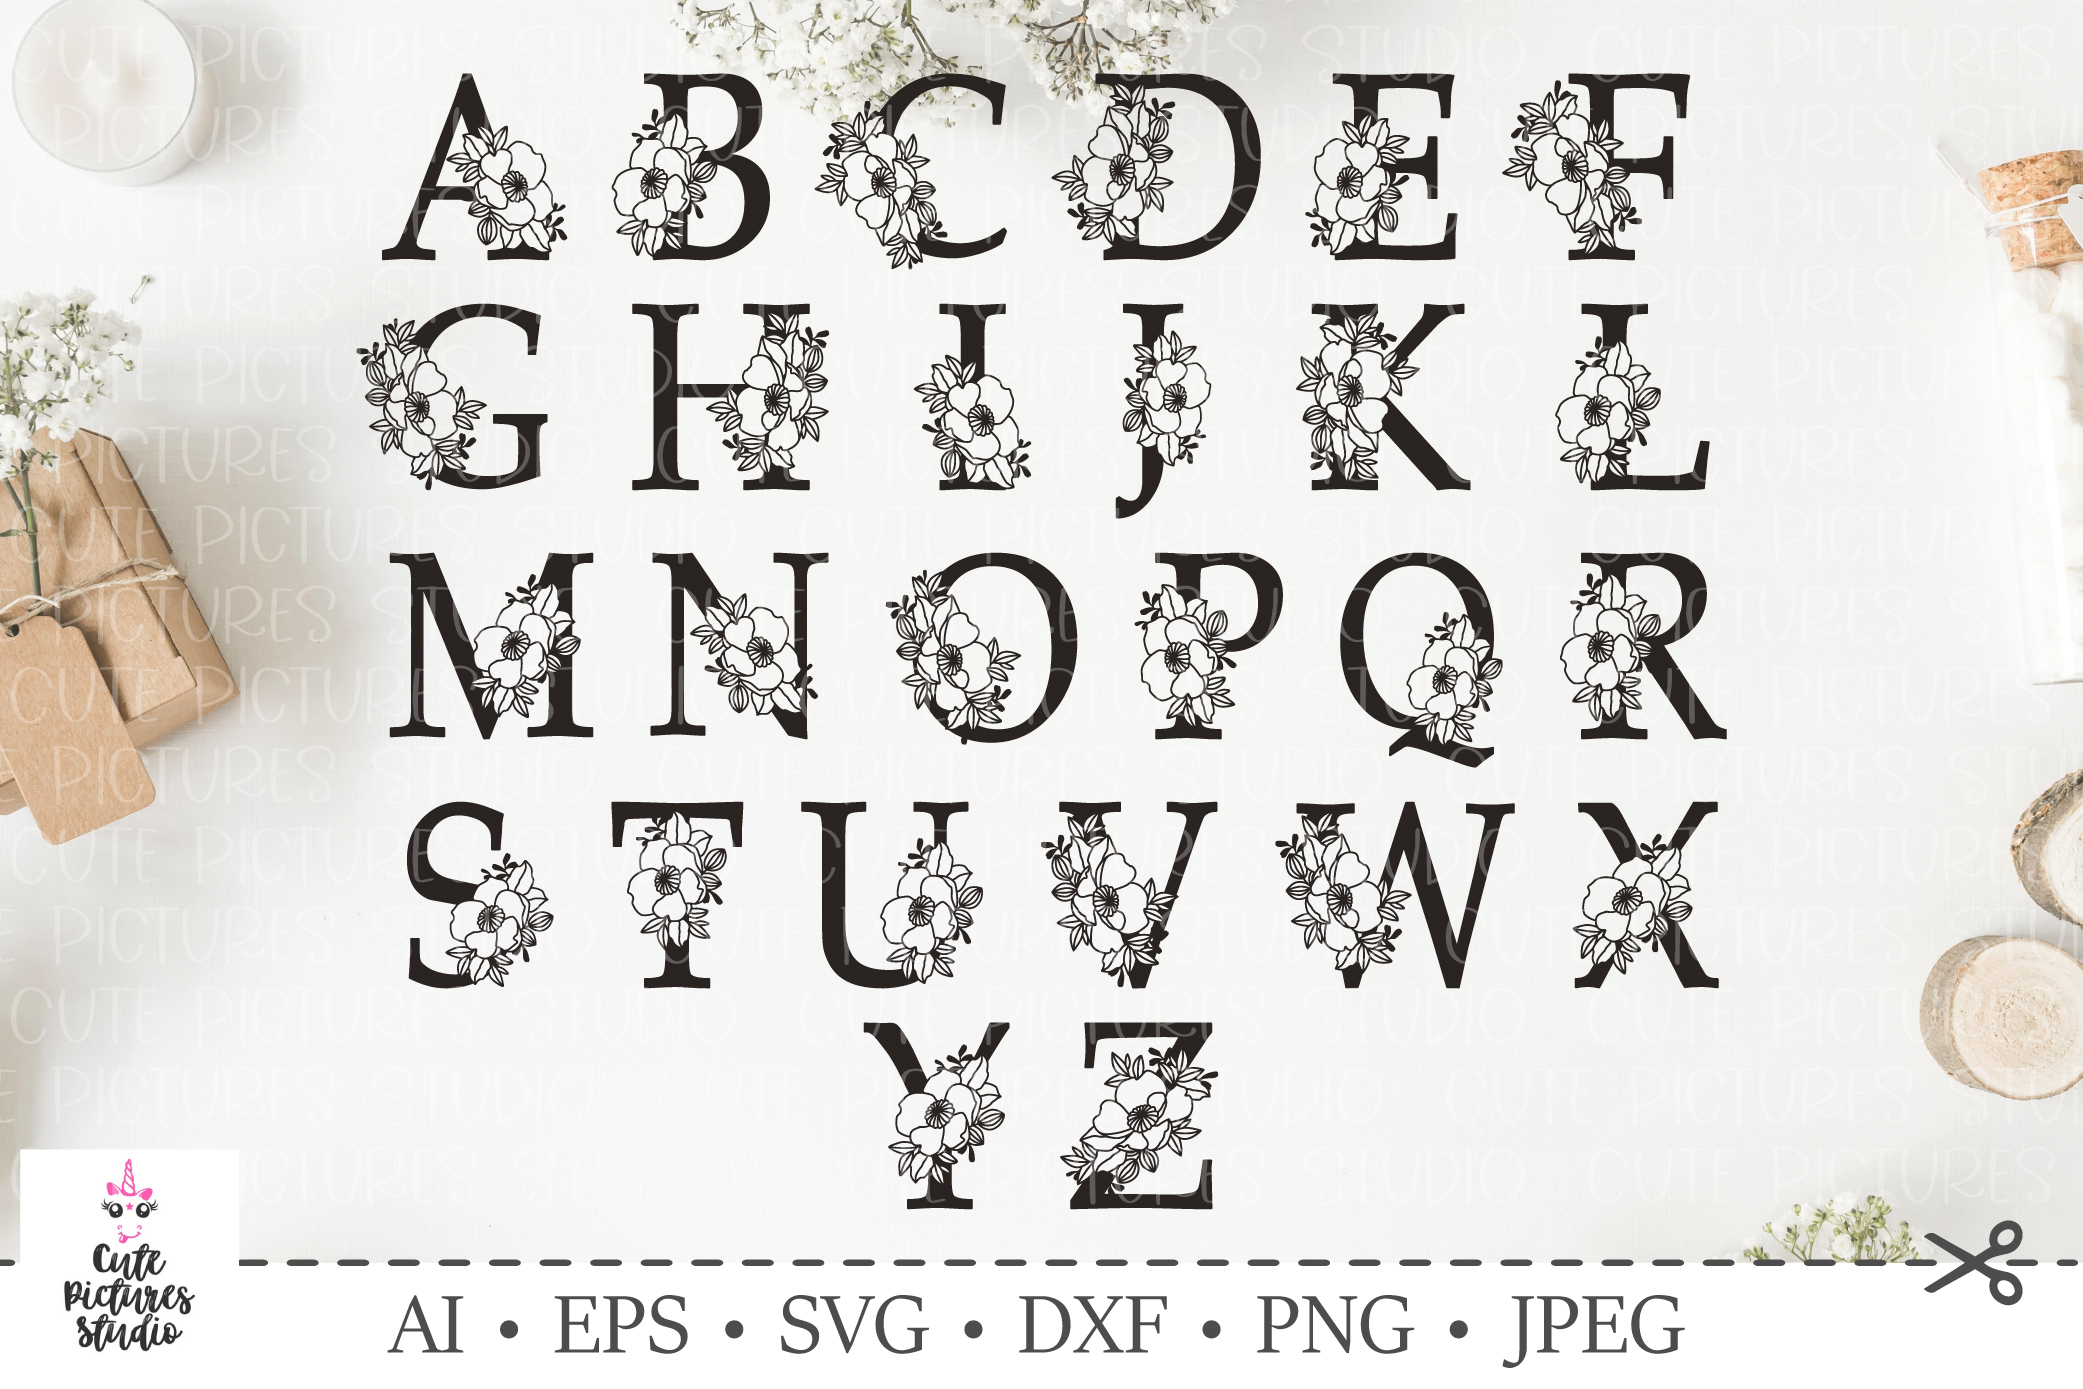 Botanical alphabet svg. Floral letter svg. Bundle SVG, DXF example image 1